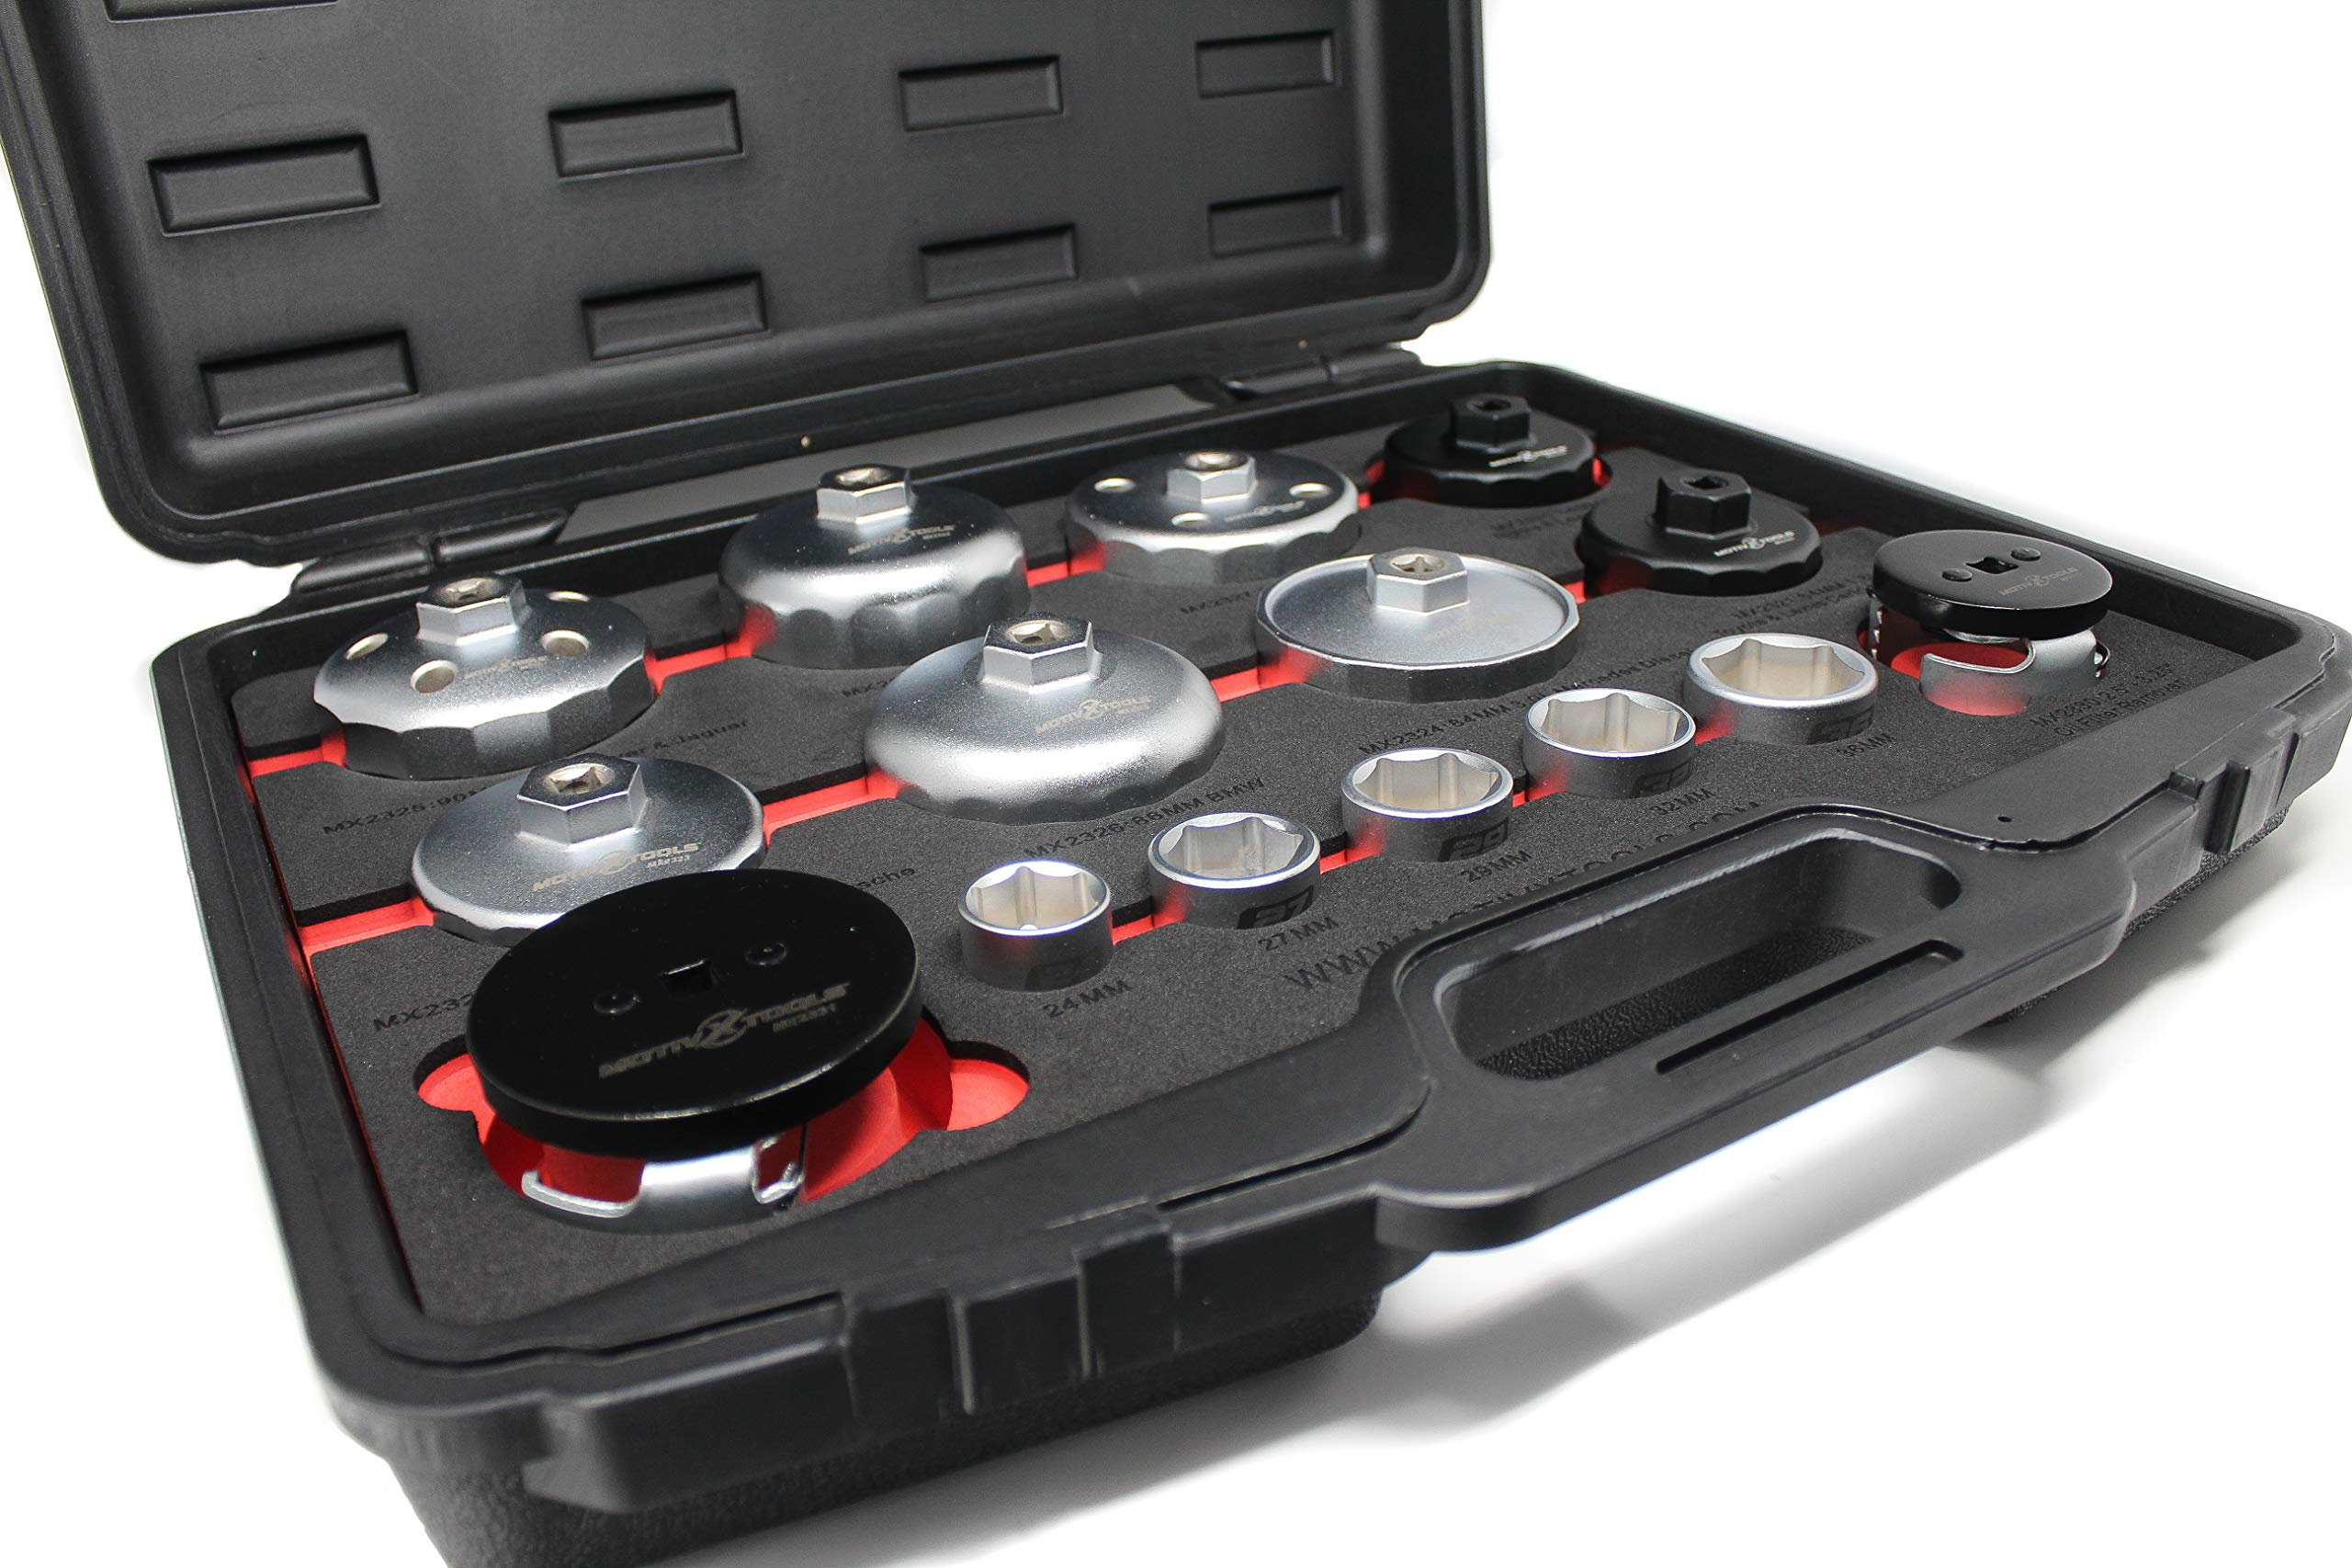 Motivx Tools Professional 15 Piece Oil Filter Wrench and Socket Set - Fits Toyota, Lexus, BMW, Volvo, Mercedes, and Many More